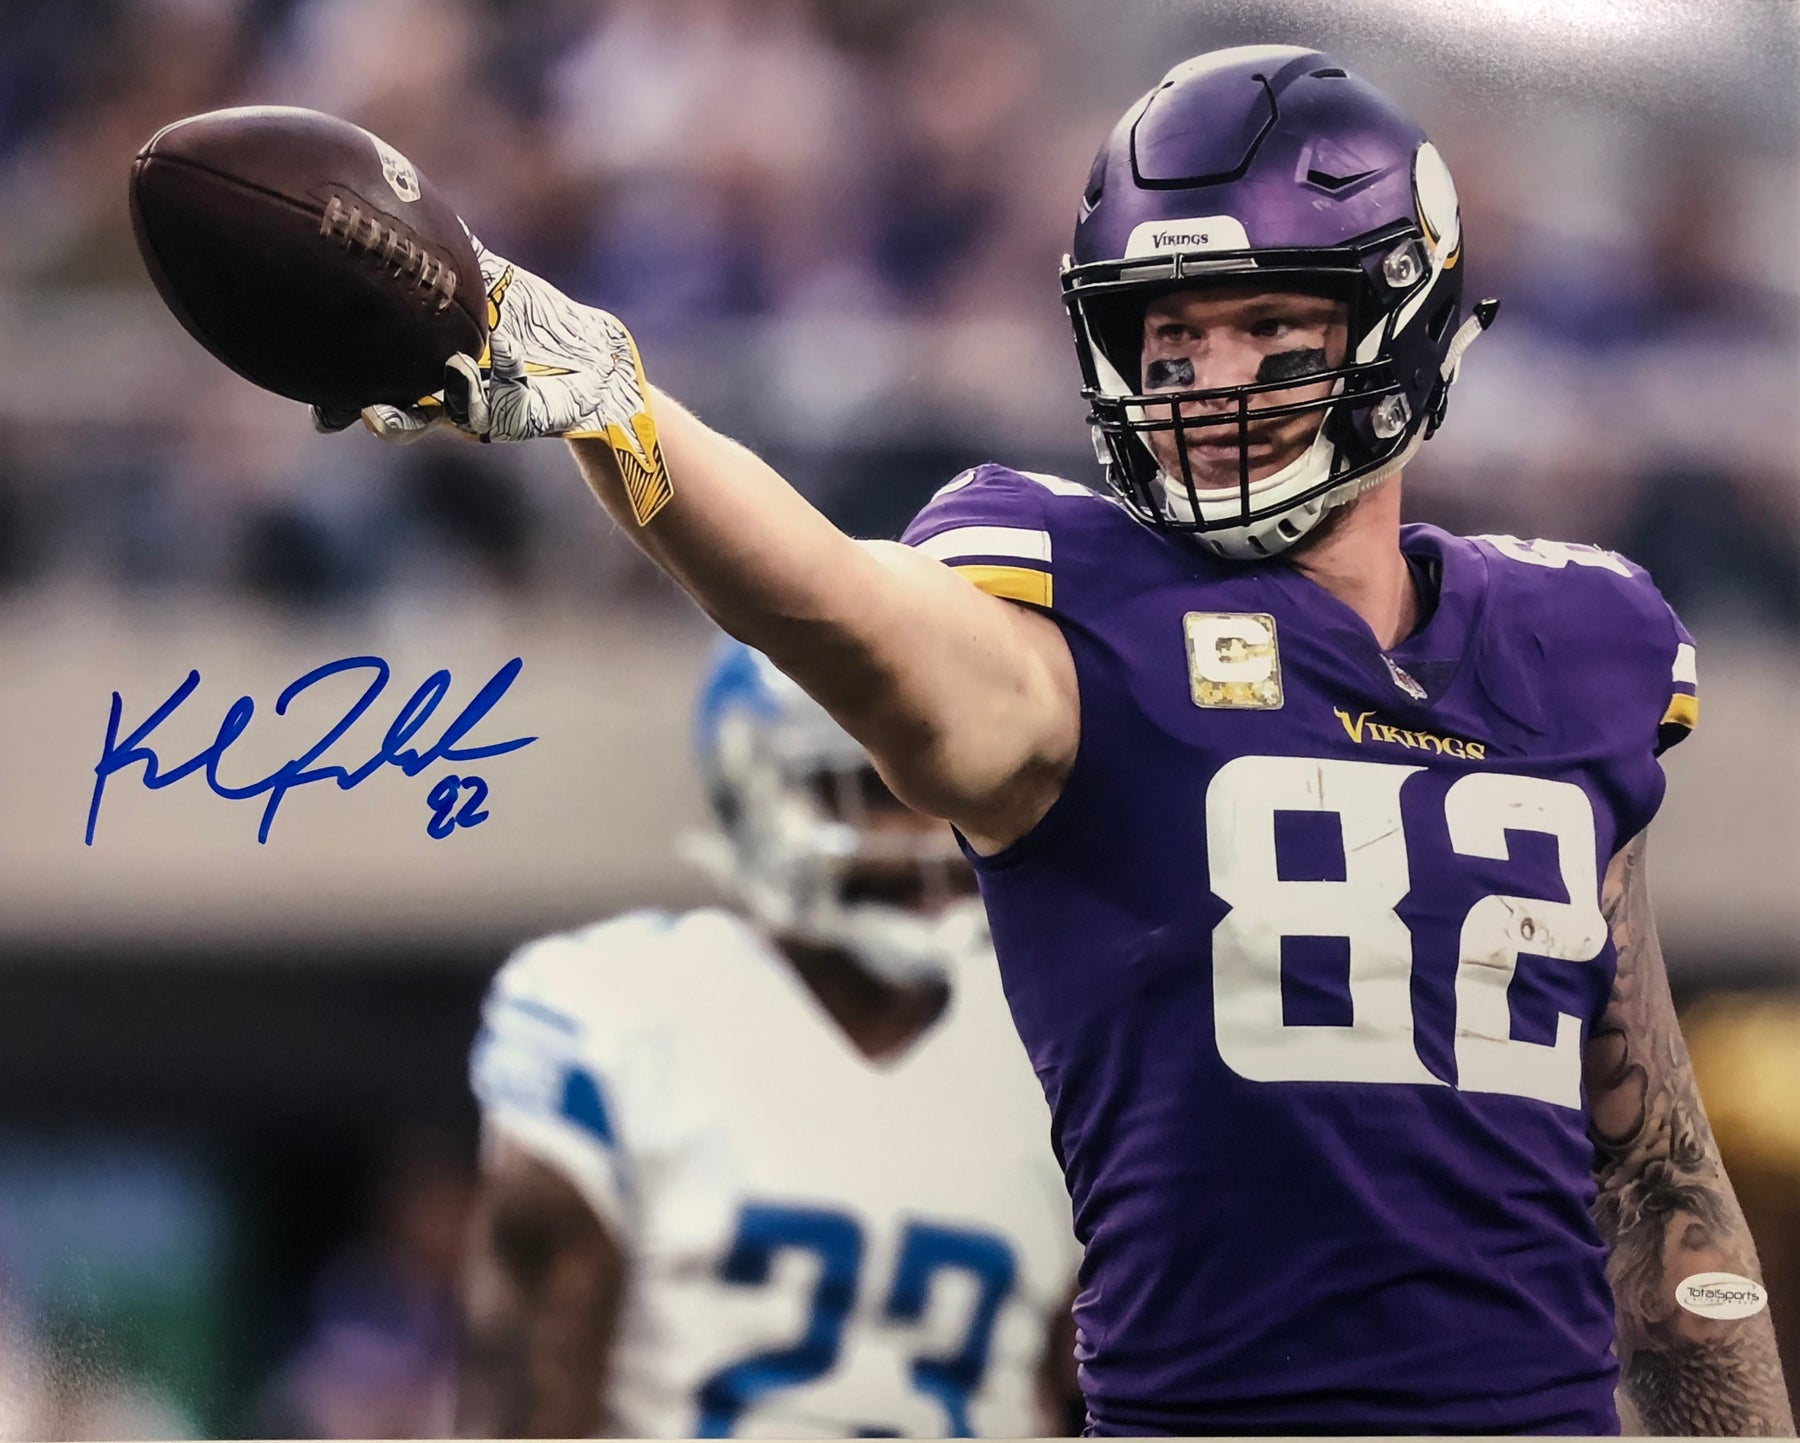 Kyle Rudolph Autographed Horizontal in Purple (Pointing) 16x20 Photo